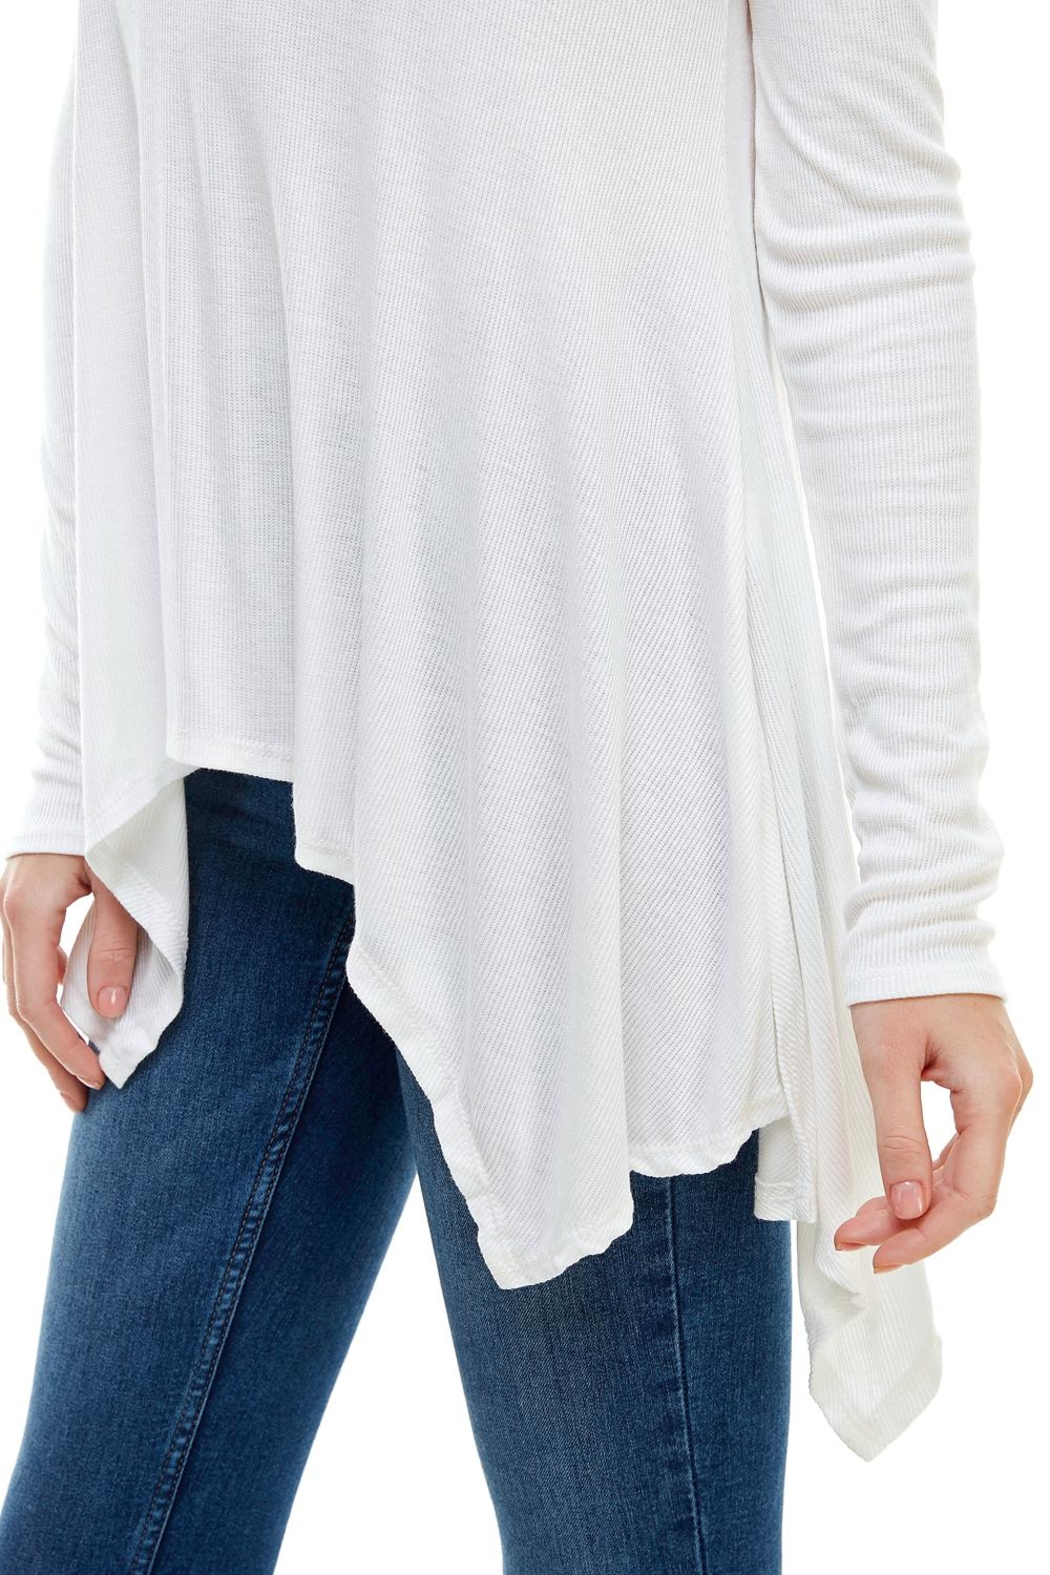 Miley and Molly Everyday Favorite Ribbed Knit Top - Side Cropped Image